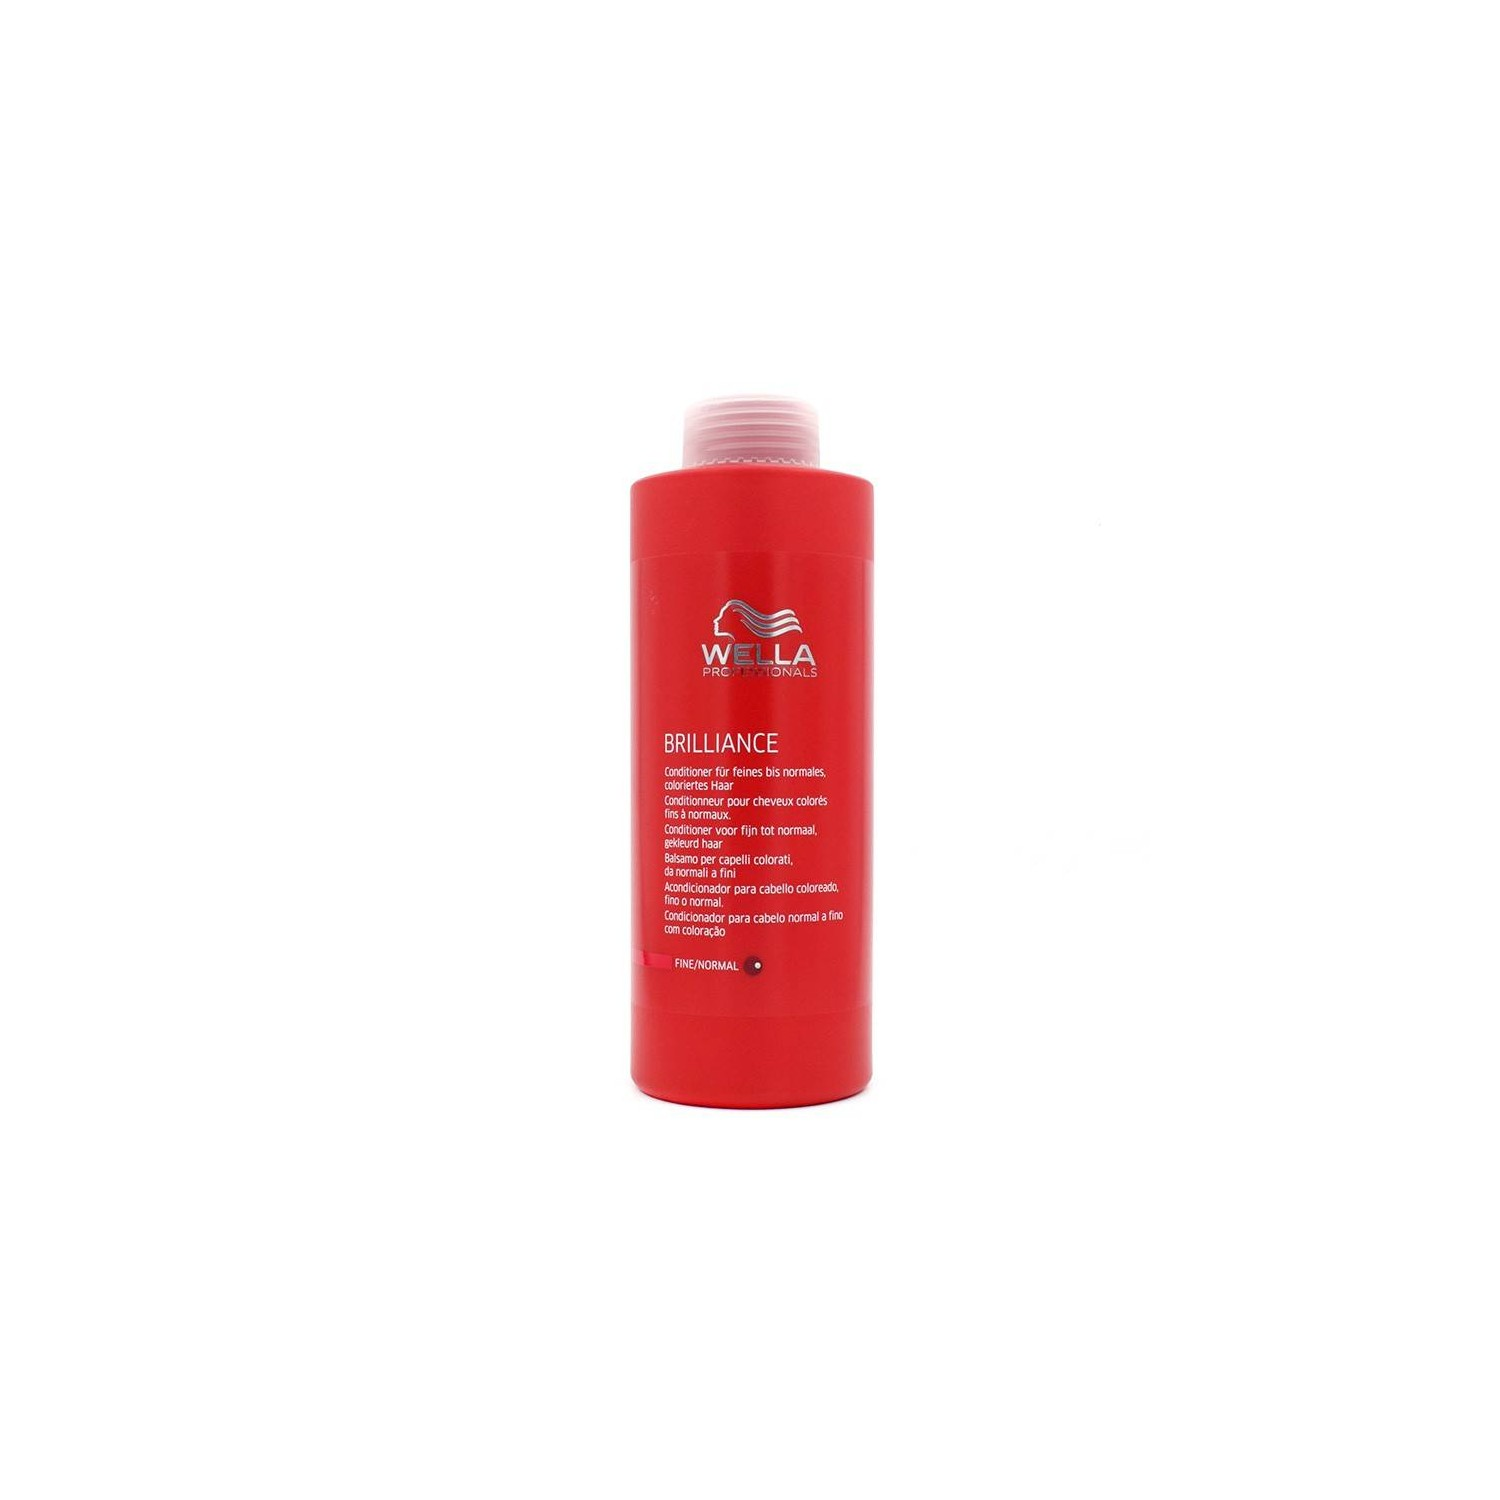 Wella Brilliance Acondicionador Cabello Fino/normal 1000 Ml